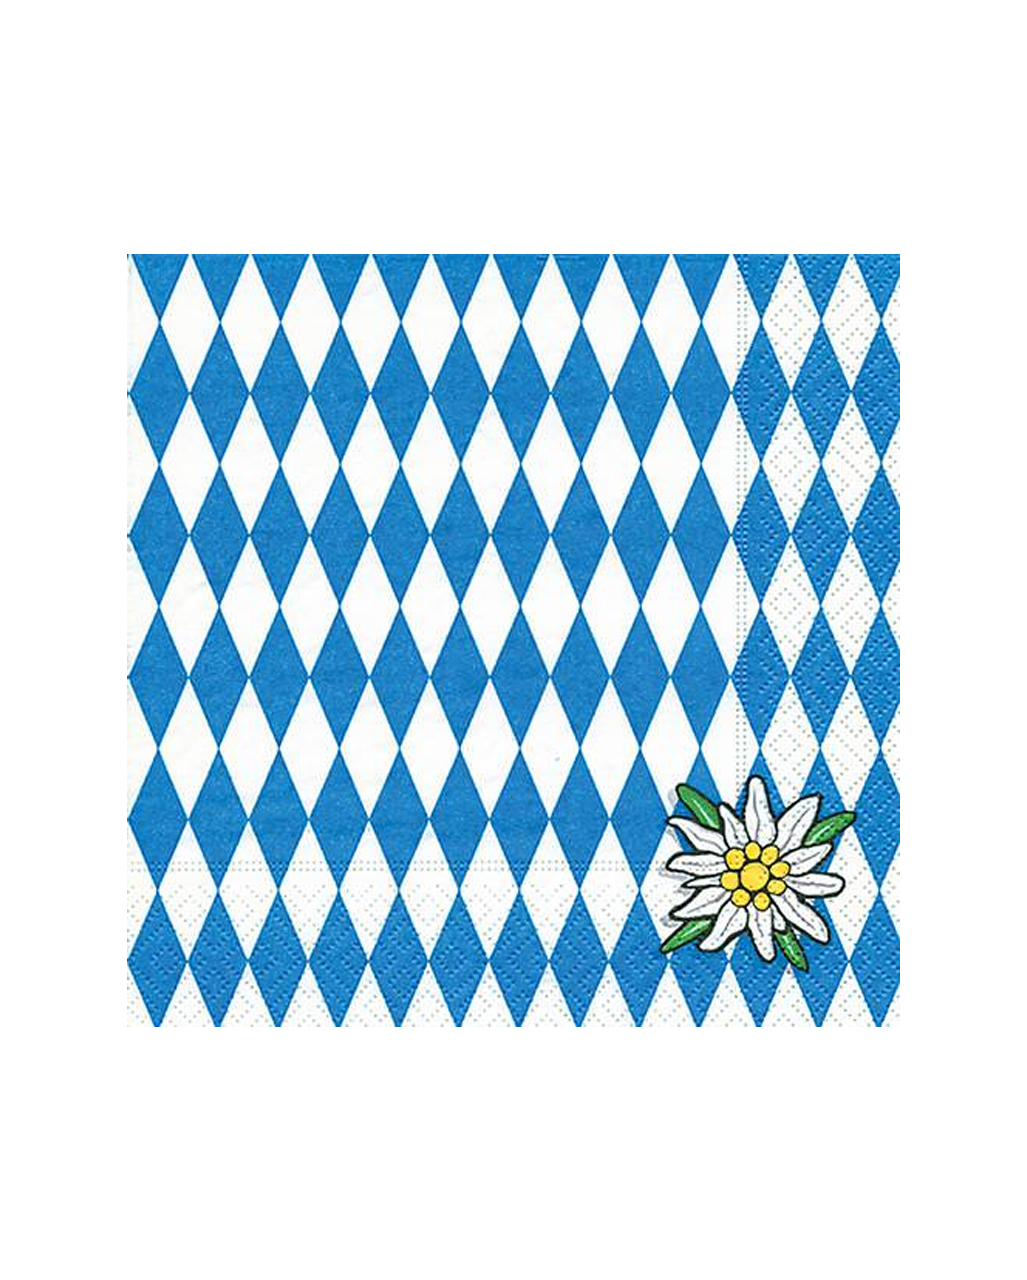 Bavaria Napkin With Edelweiss 20 Pieces Table Decoration Horror